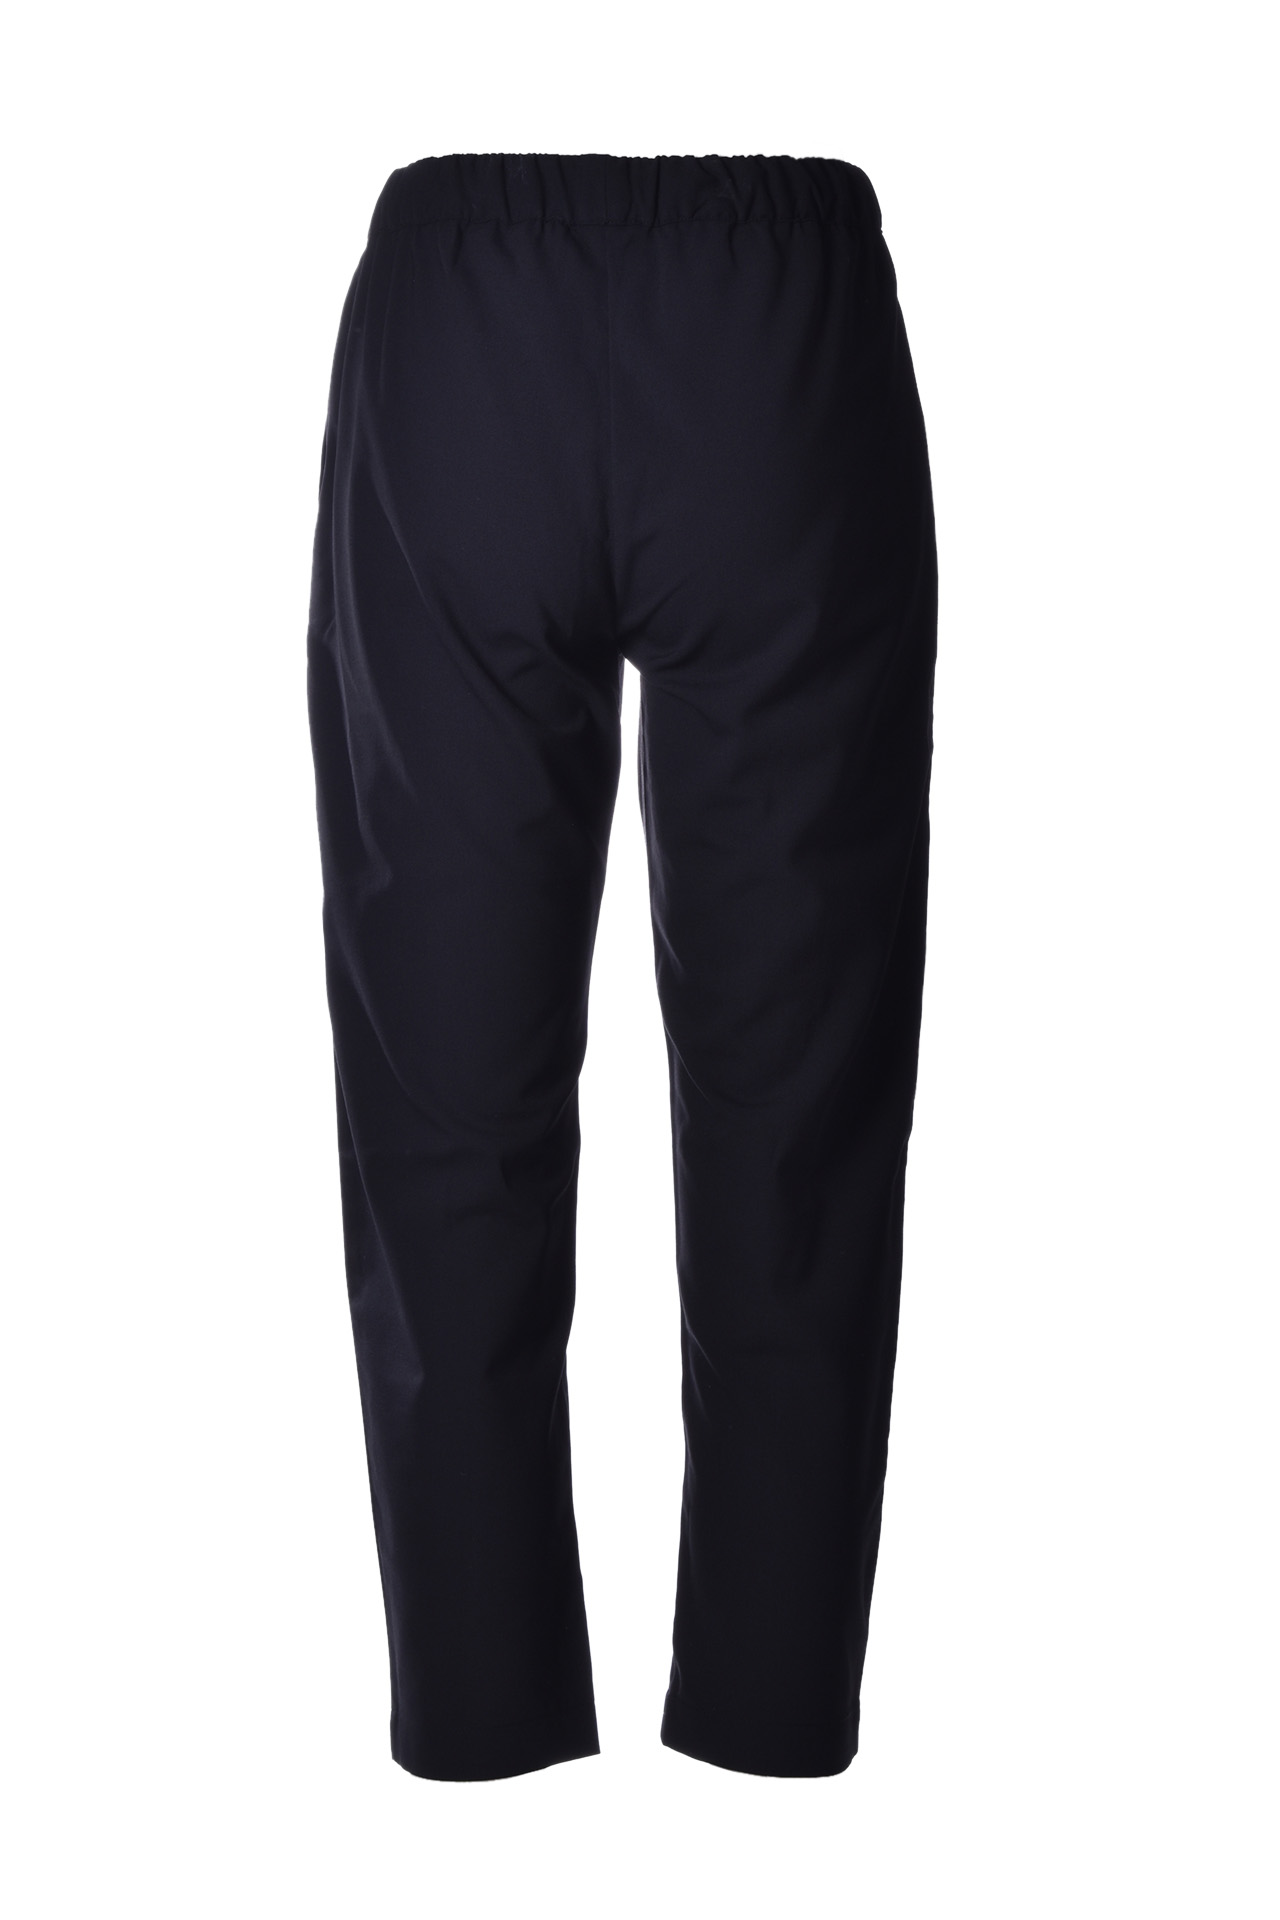 buddy pants with elastic SEMICOUTURE | Trousers | Y0SL01Y69-0